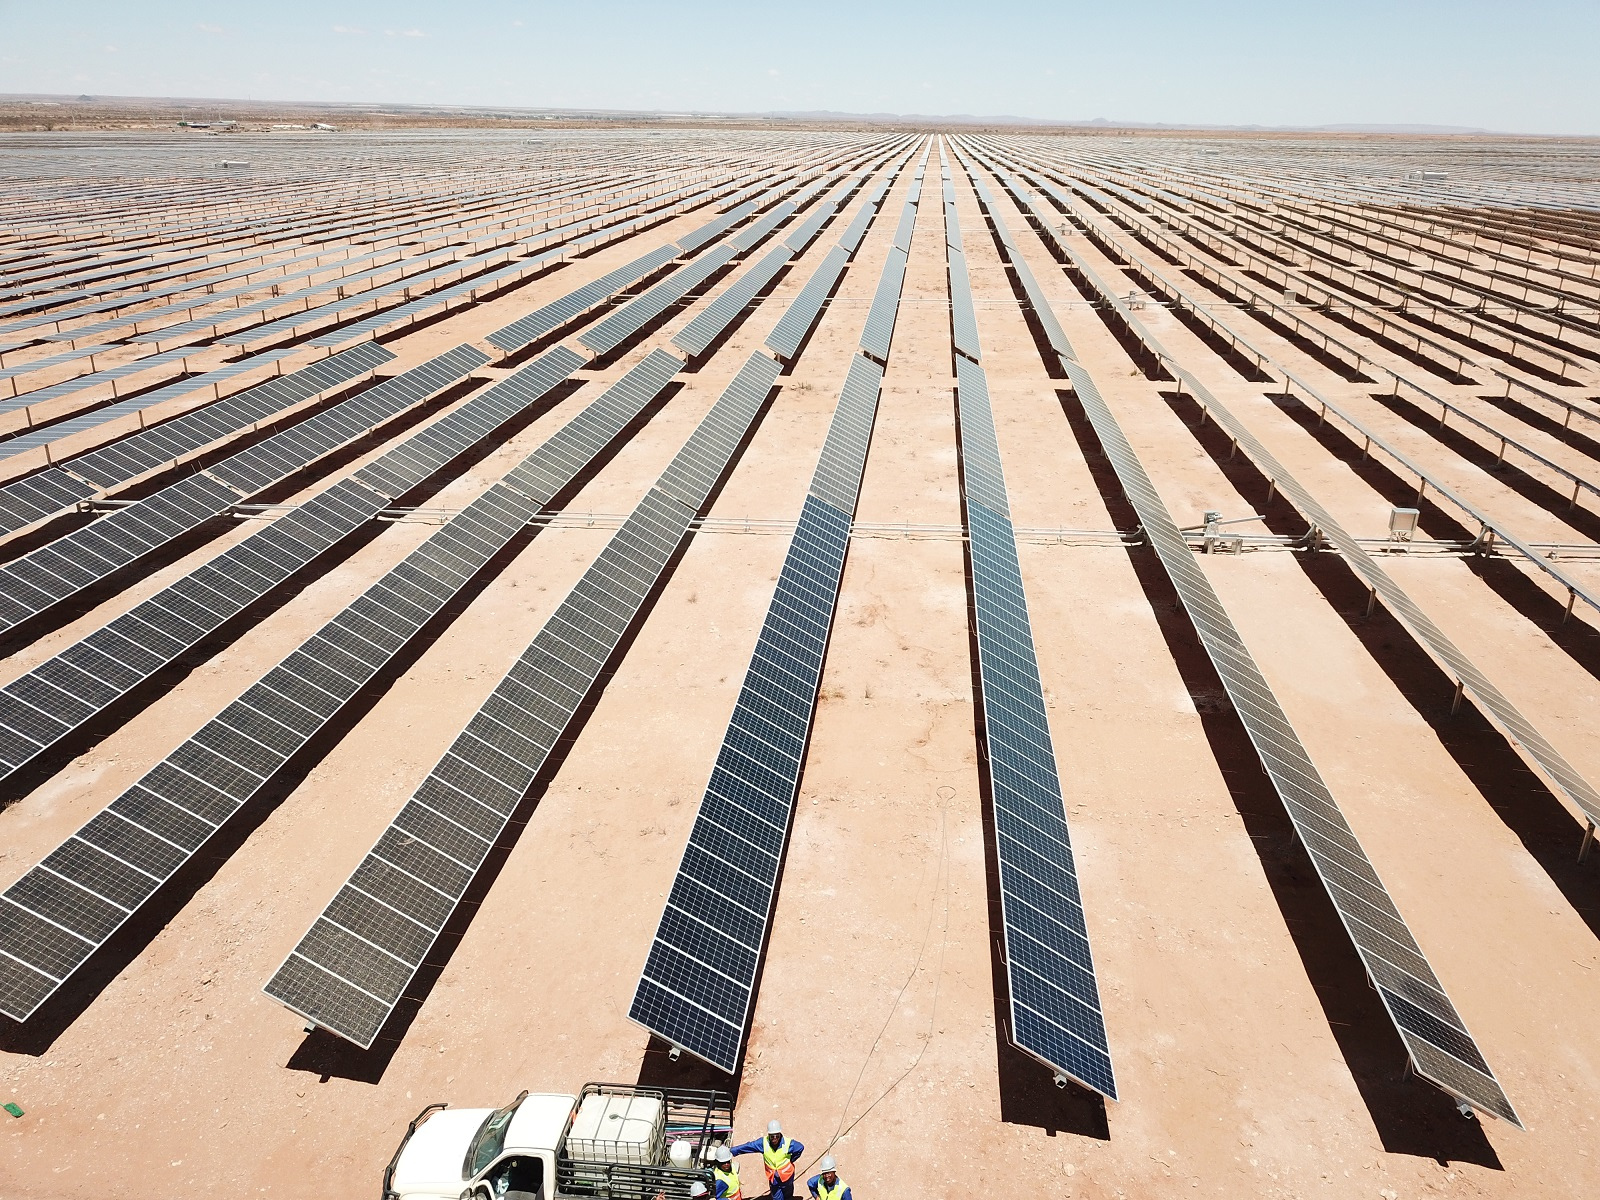 The Upington Solar Complex completed by Scatec Solar. Image: Scatec Solar.